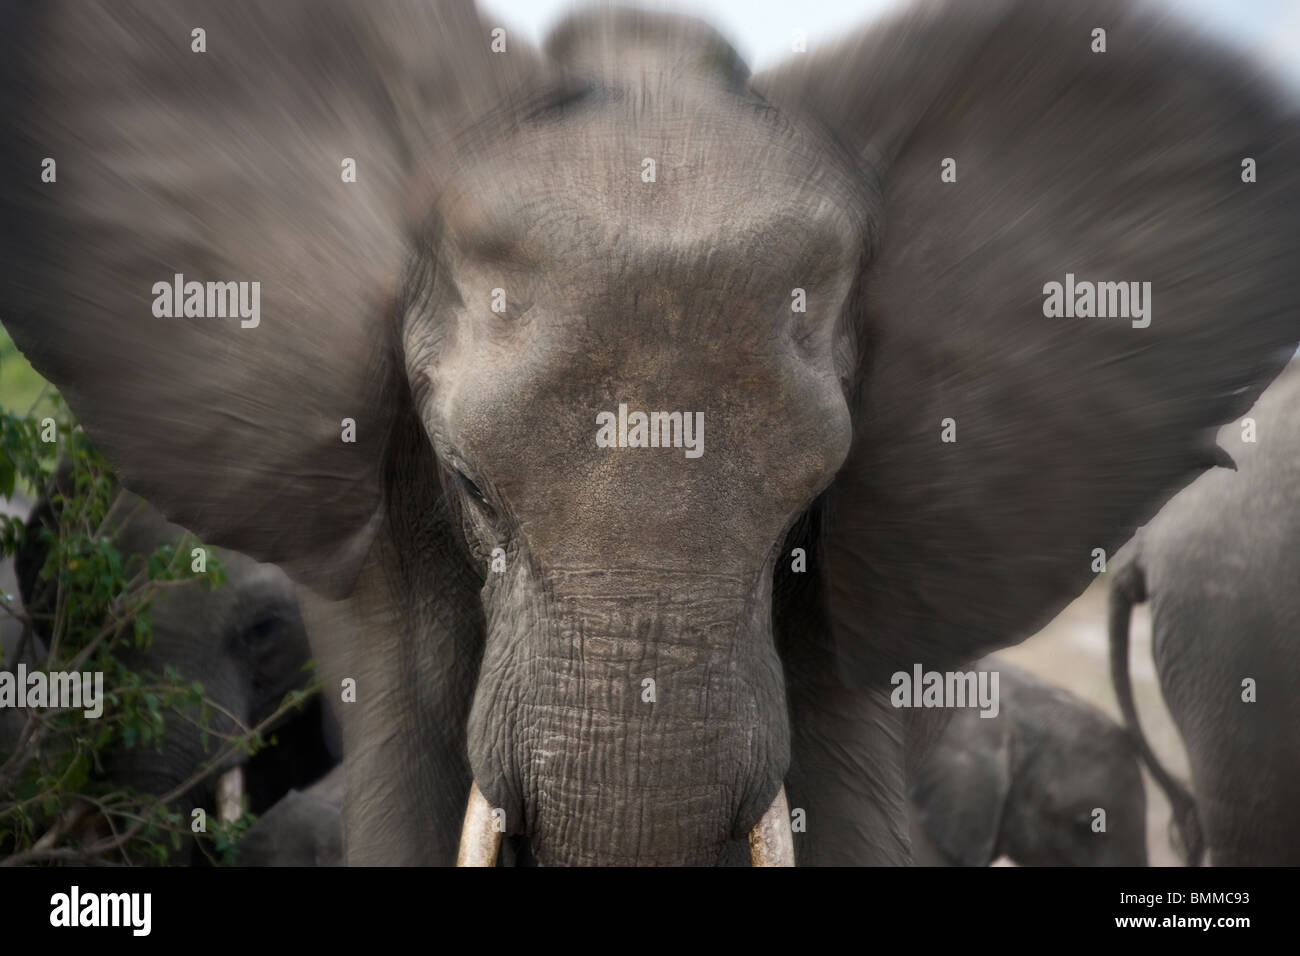 A charging African Elephant (Loxodonta africana) in the Savuti region of Northern Botswana. - Stock Image